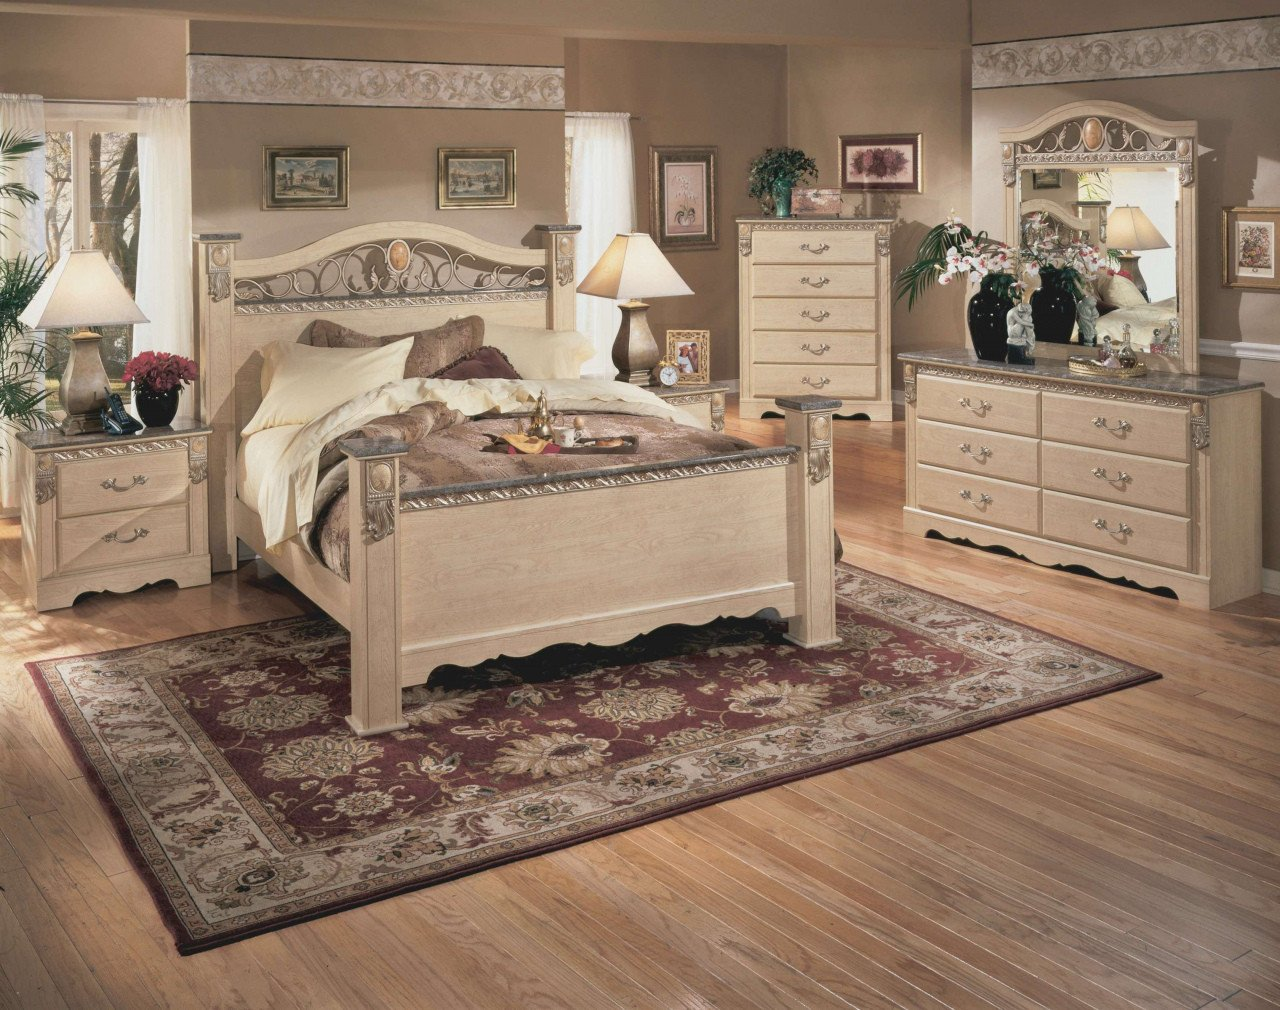 Ashley Furniture Full Size Bedroom Set New ashley Furniture Kids Bedroom Sets ashley Bedroom Set with